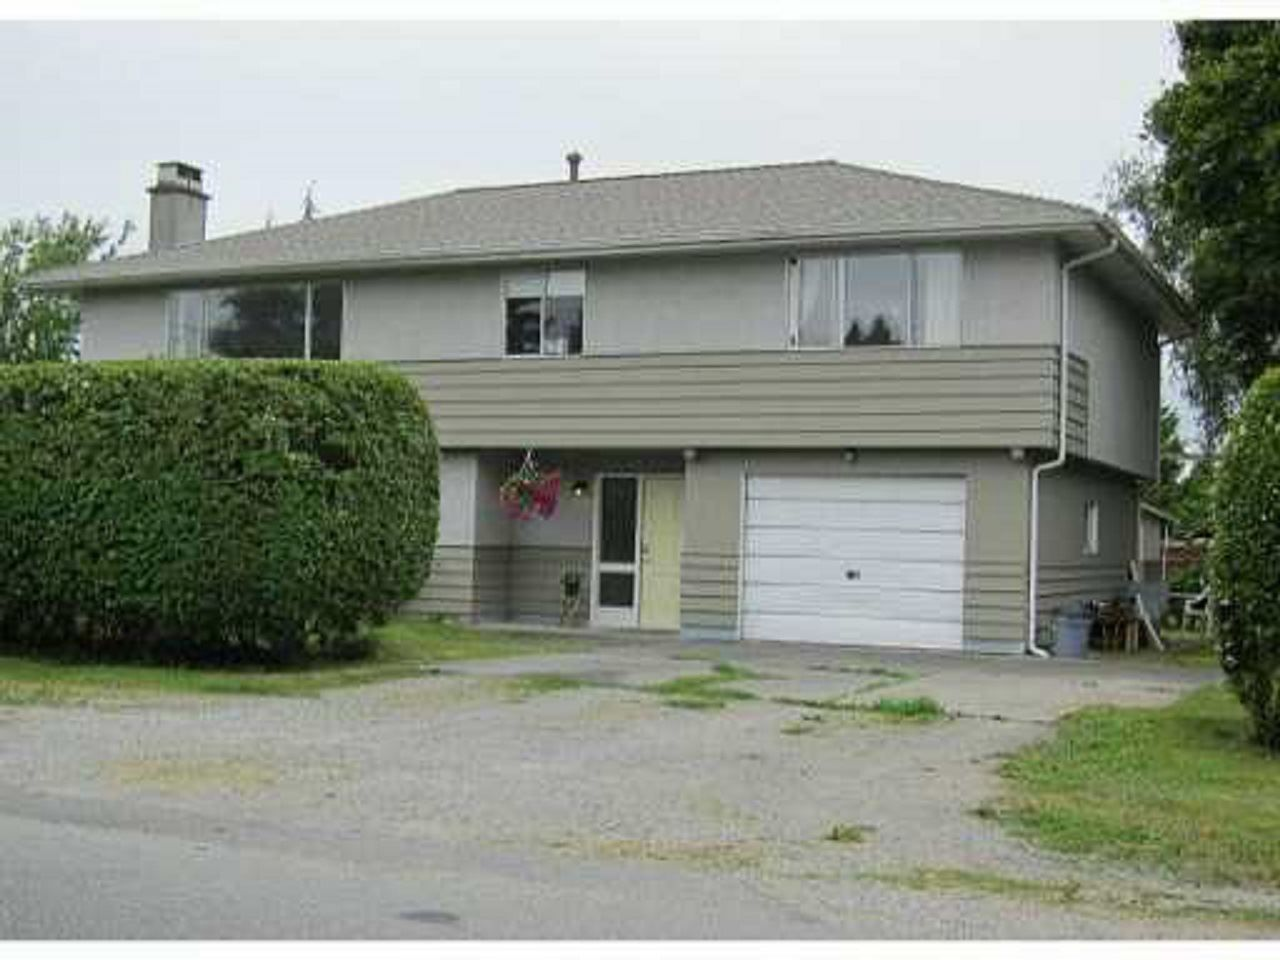 Main Photo: 5898 CRESCENT DRIVE in Delta: Hawthorne House for sale (Ladner)  : MLS®# R2538780